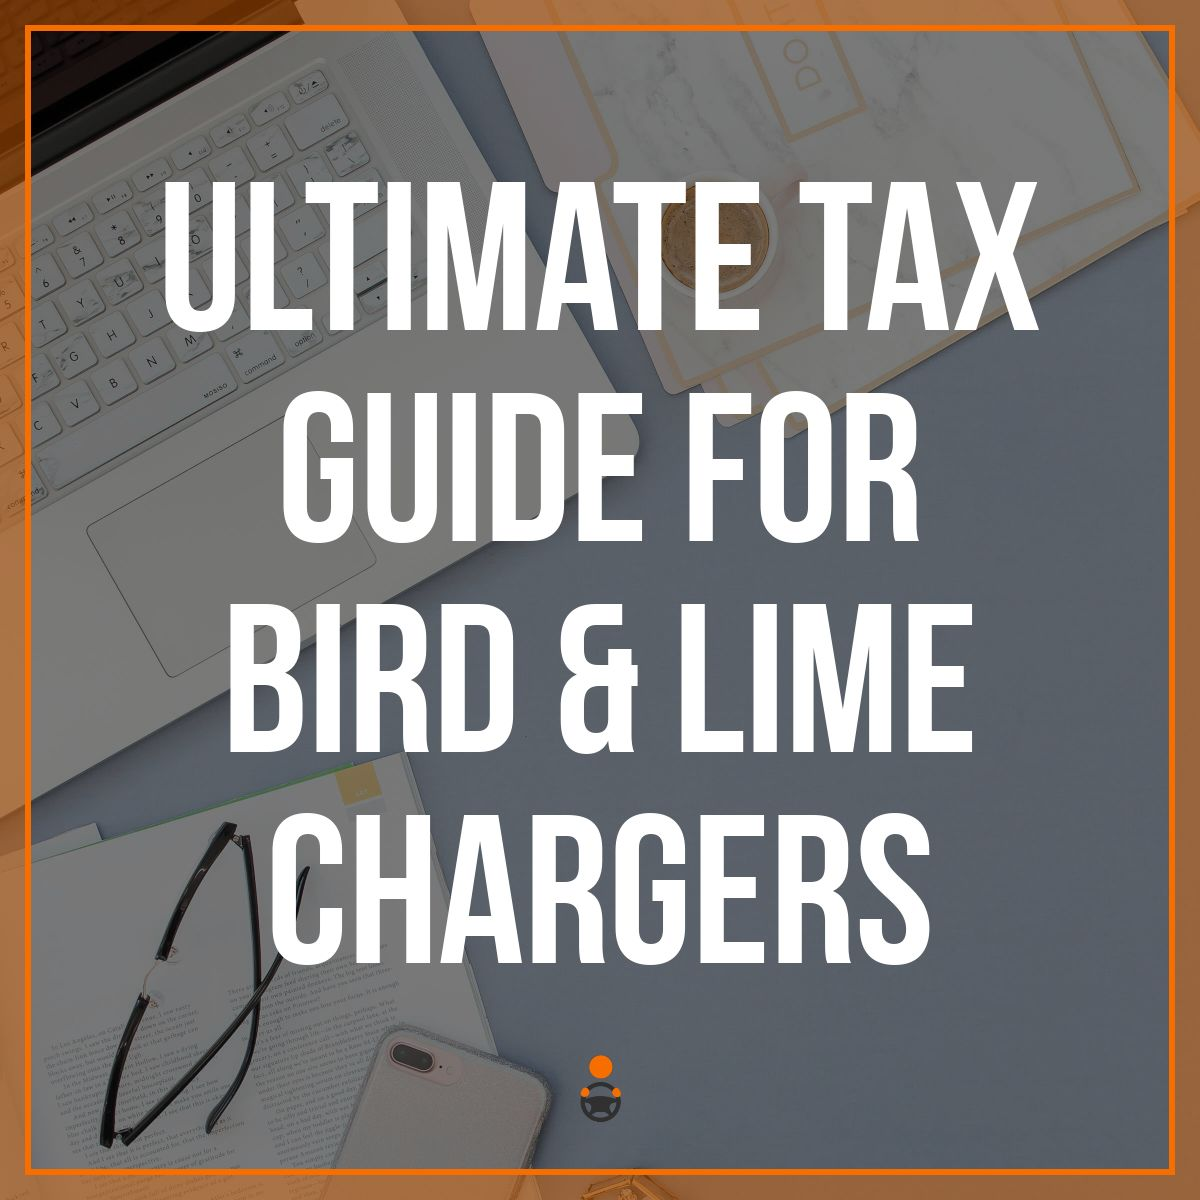 Ultimate Tax Guide for Bird & Lime Chargers (Updated for 2019)